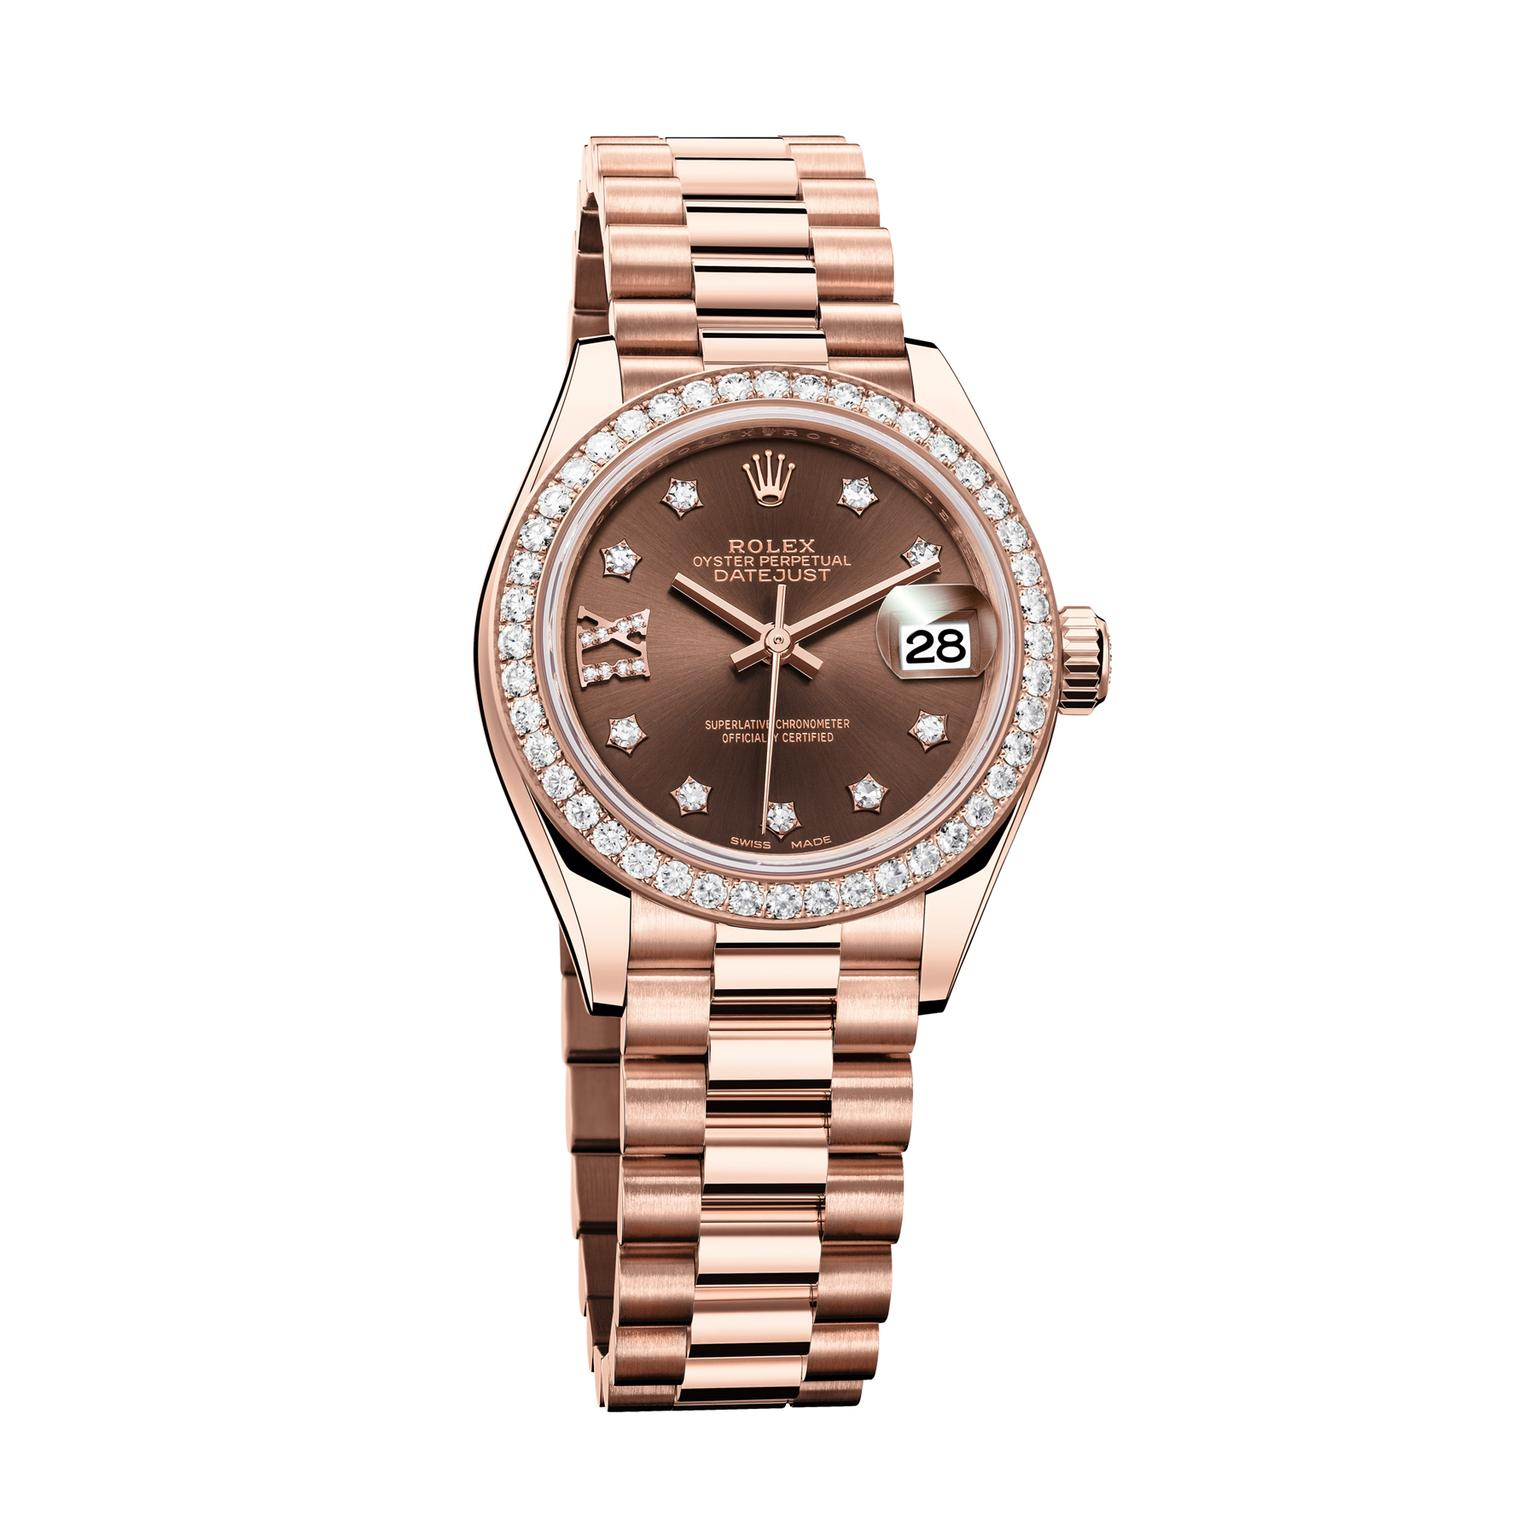 Rolex Oyster Perpetual Rose Gold Oyster Perpetual Lady Datejust 28mm Watch In Everose Gold With Diamonds